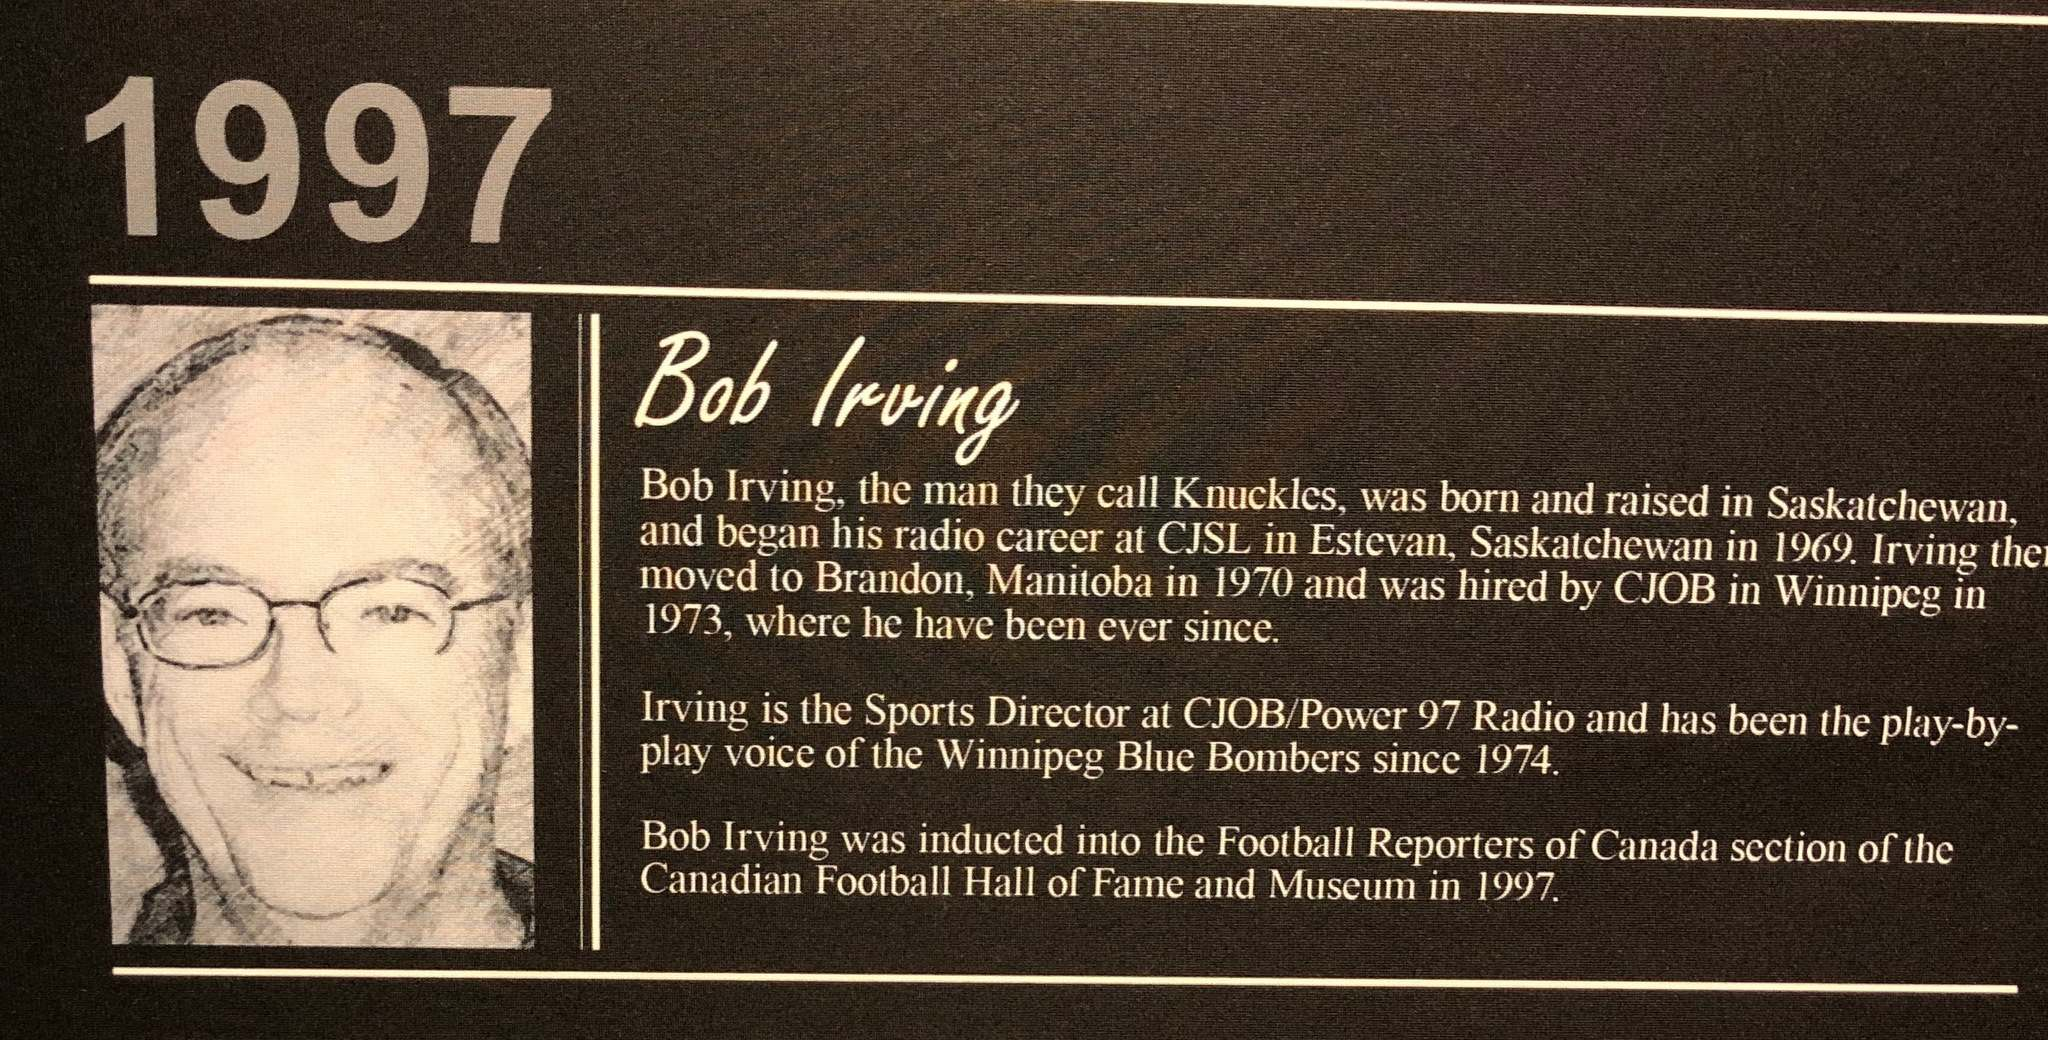 Irving was inducted into the Football Reporters of Canada section of the Canadian Football Hall of Fame in 1997.